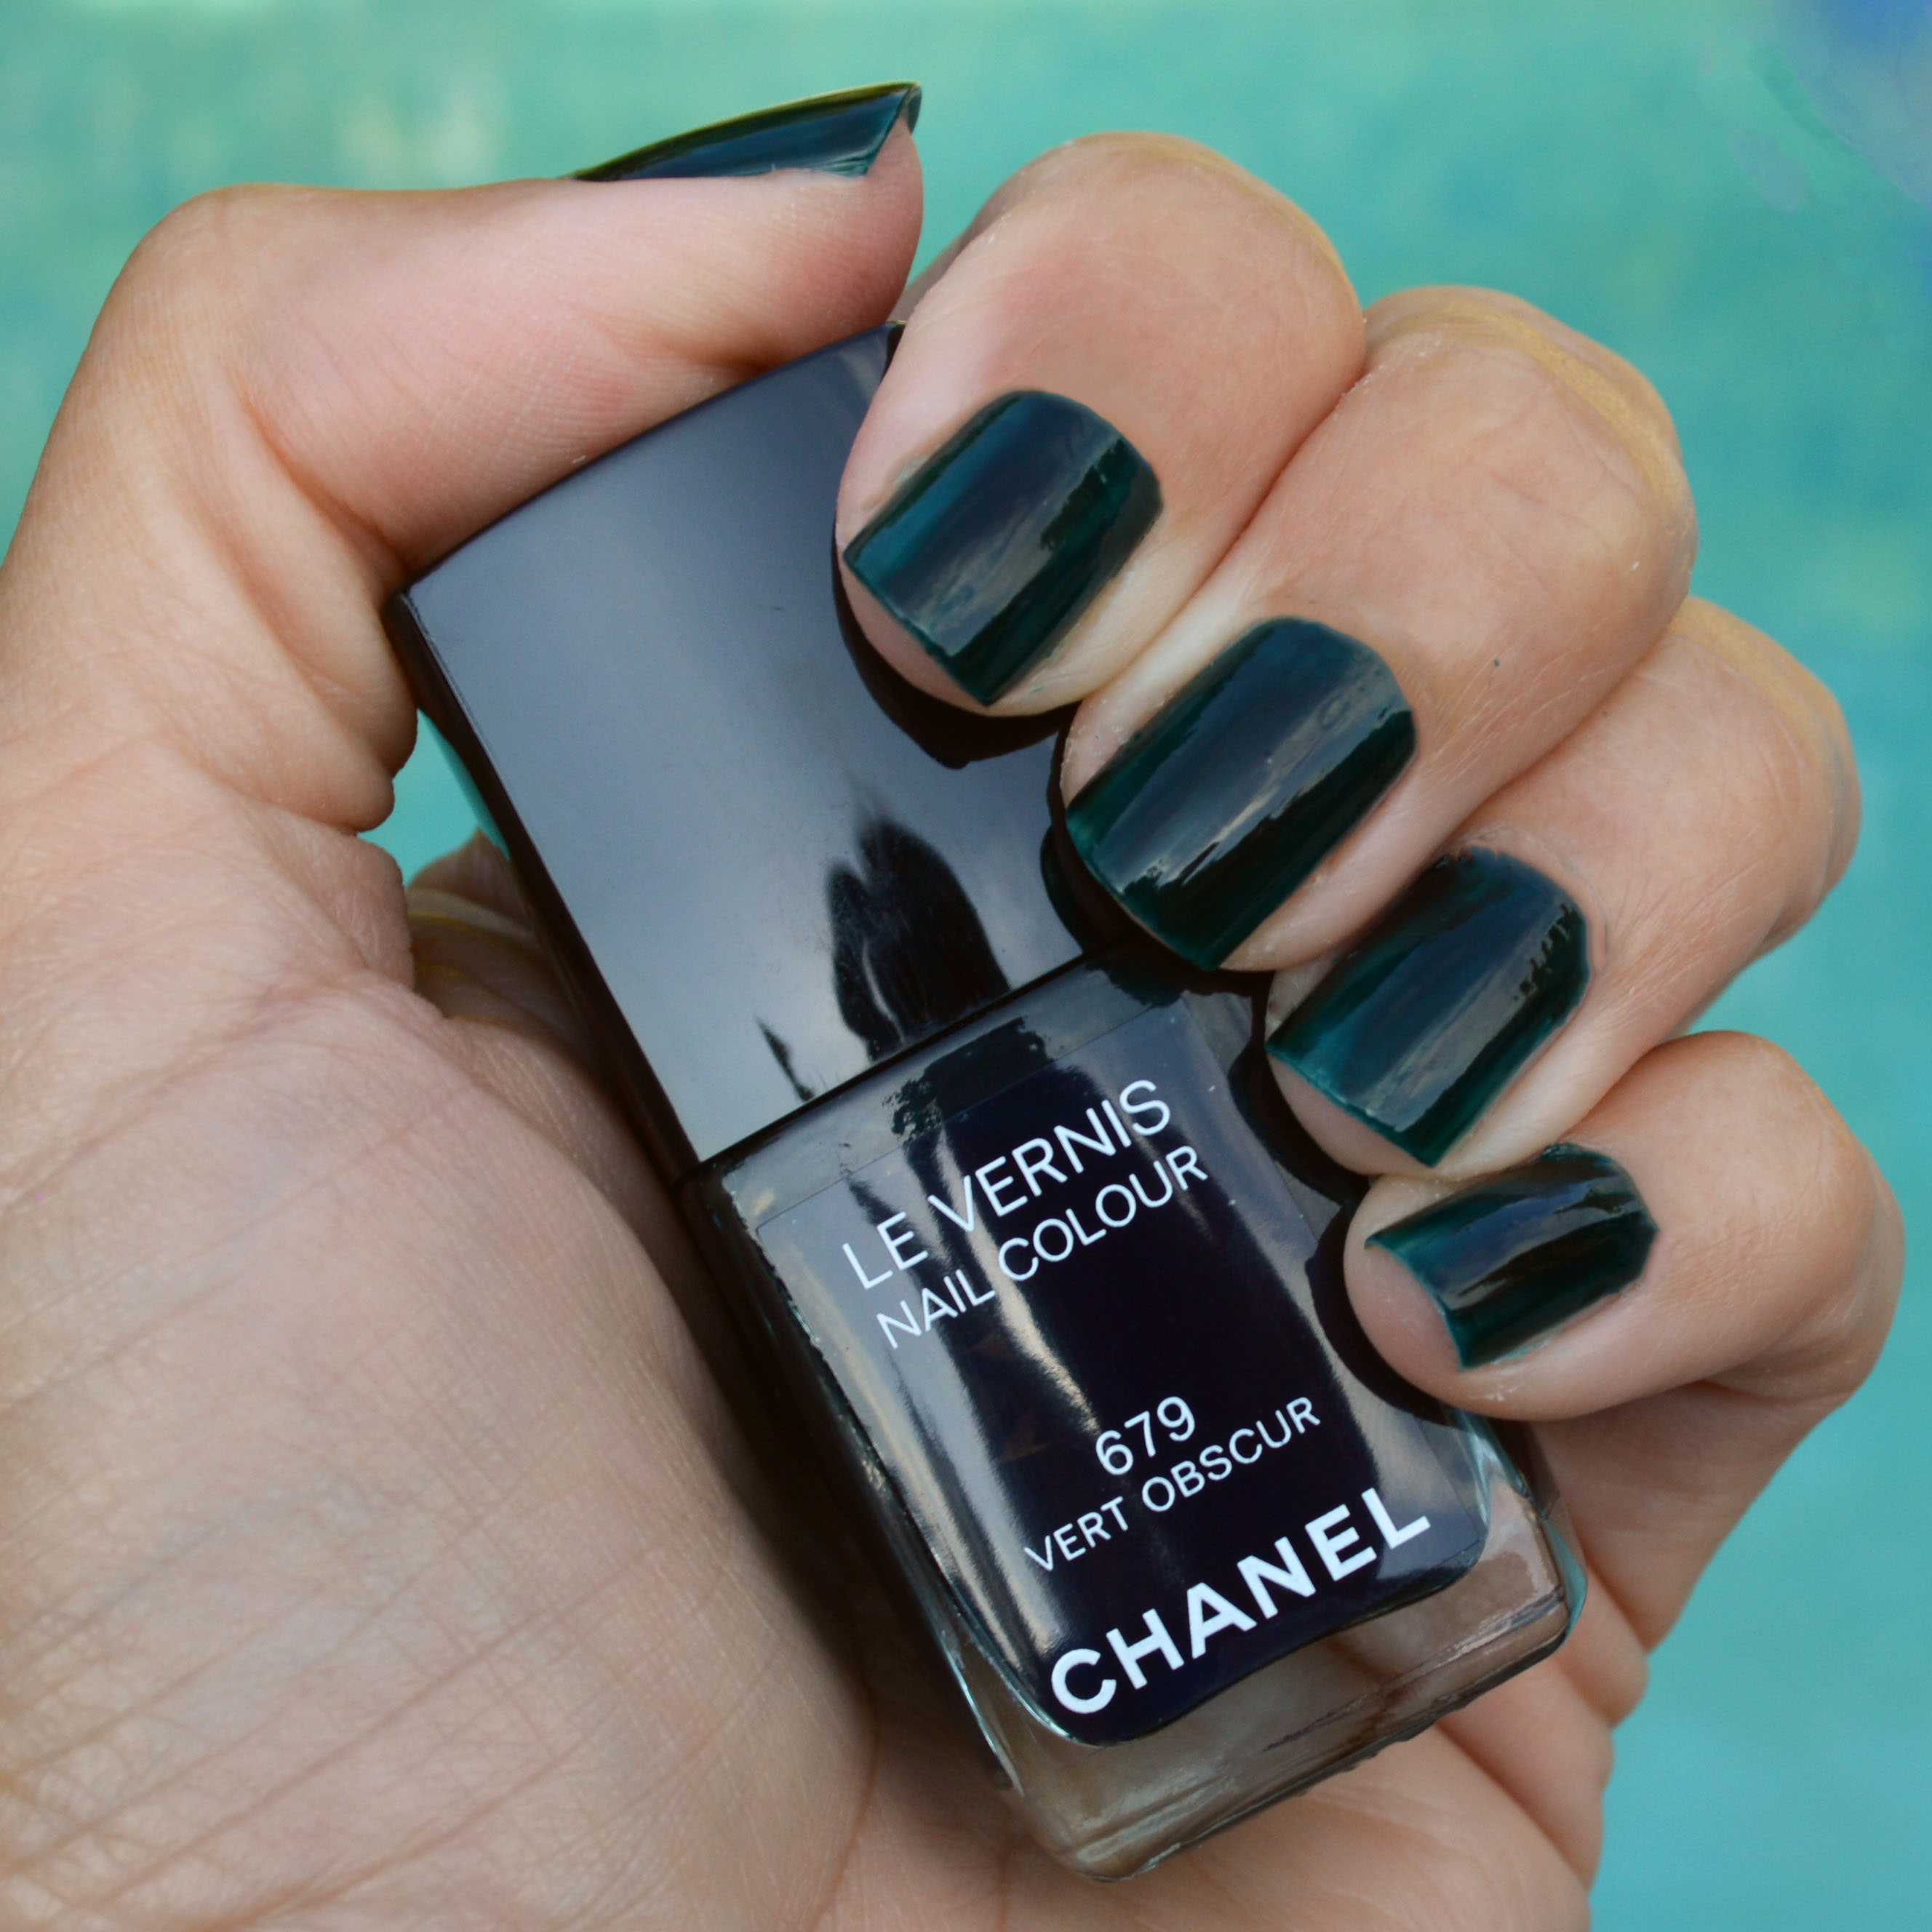 chanel vert obscur nail polish fall 2015 review – Bay Area Fashionista